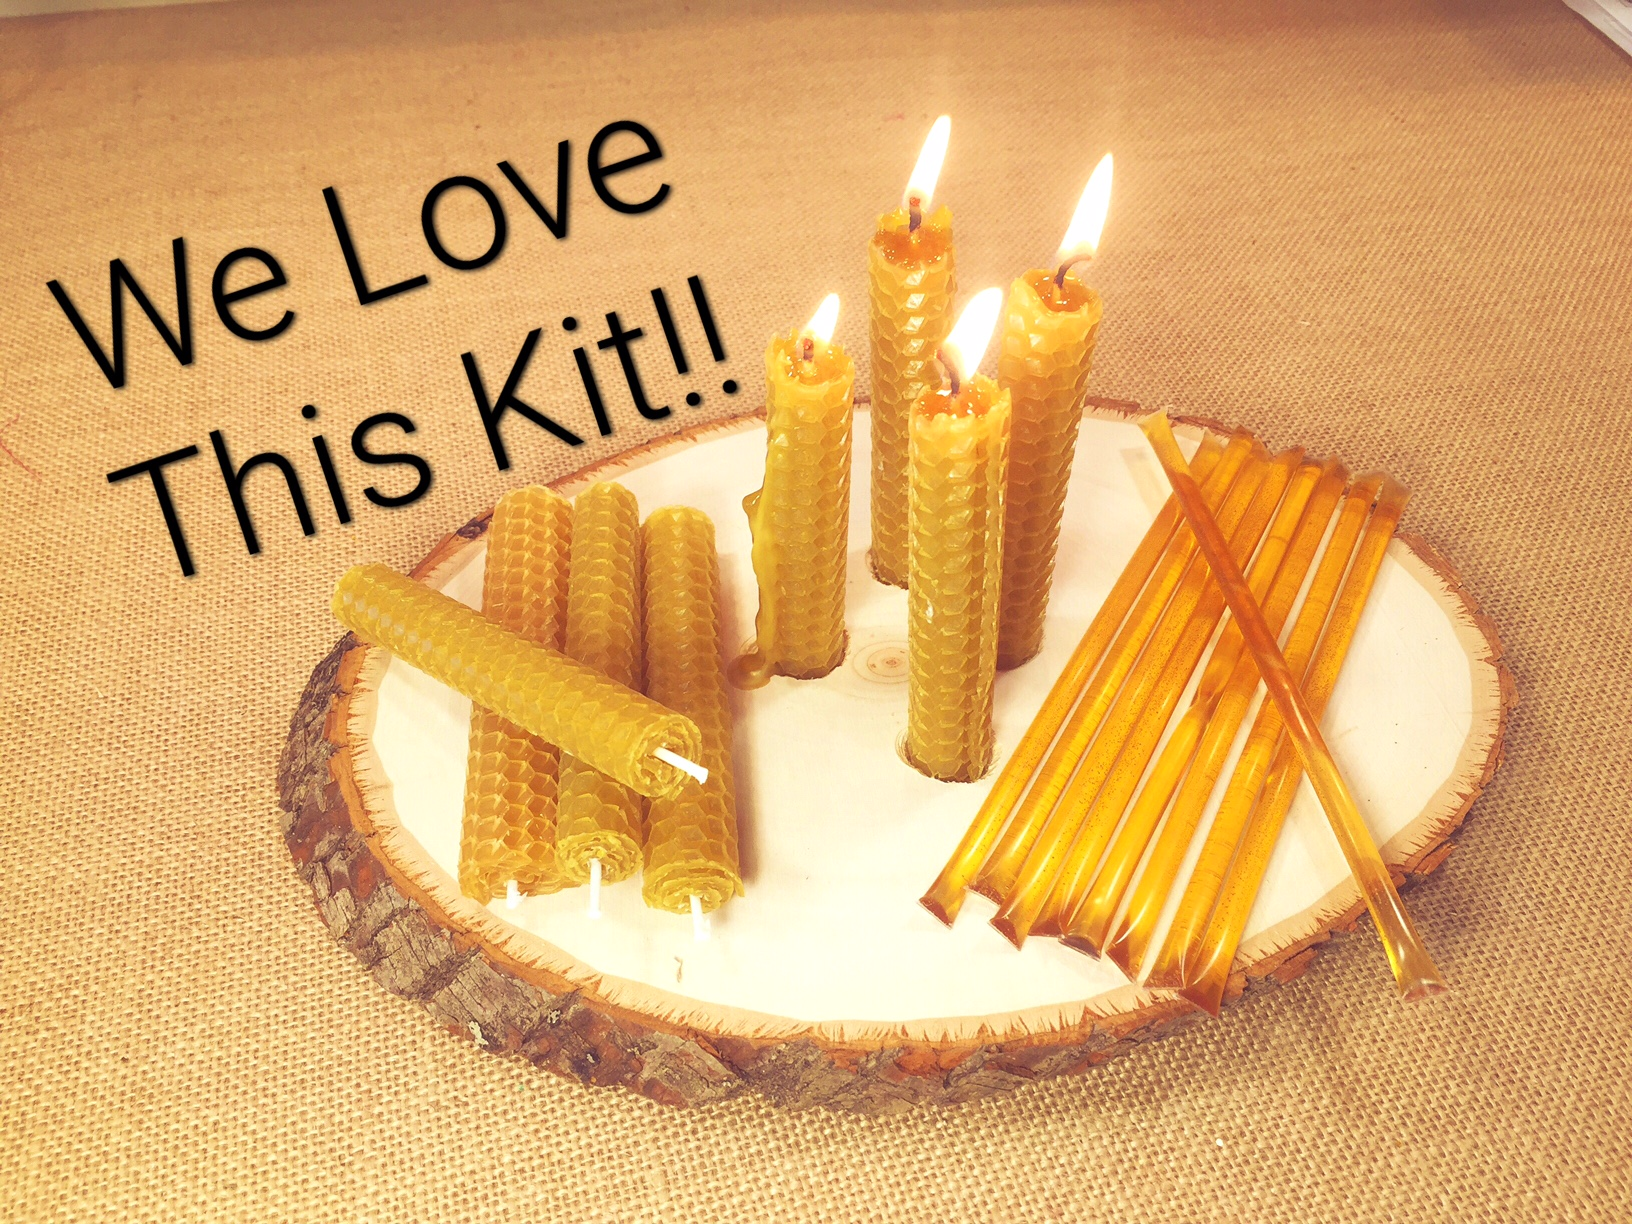 CANDLE ROLLING KIT